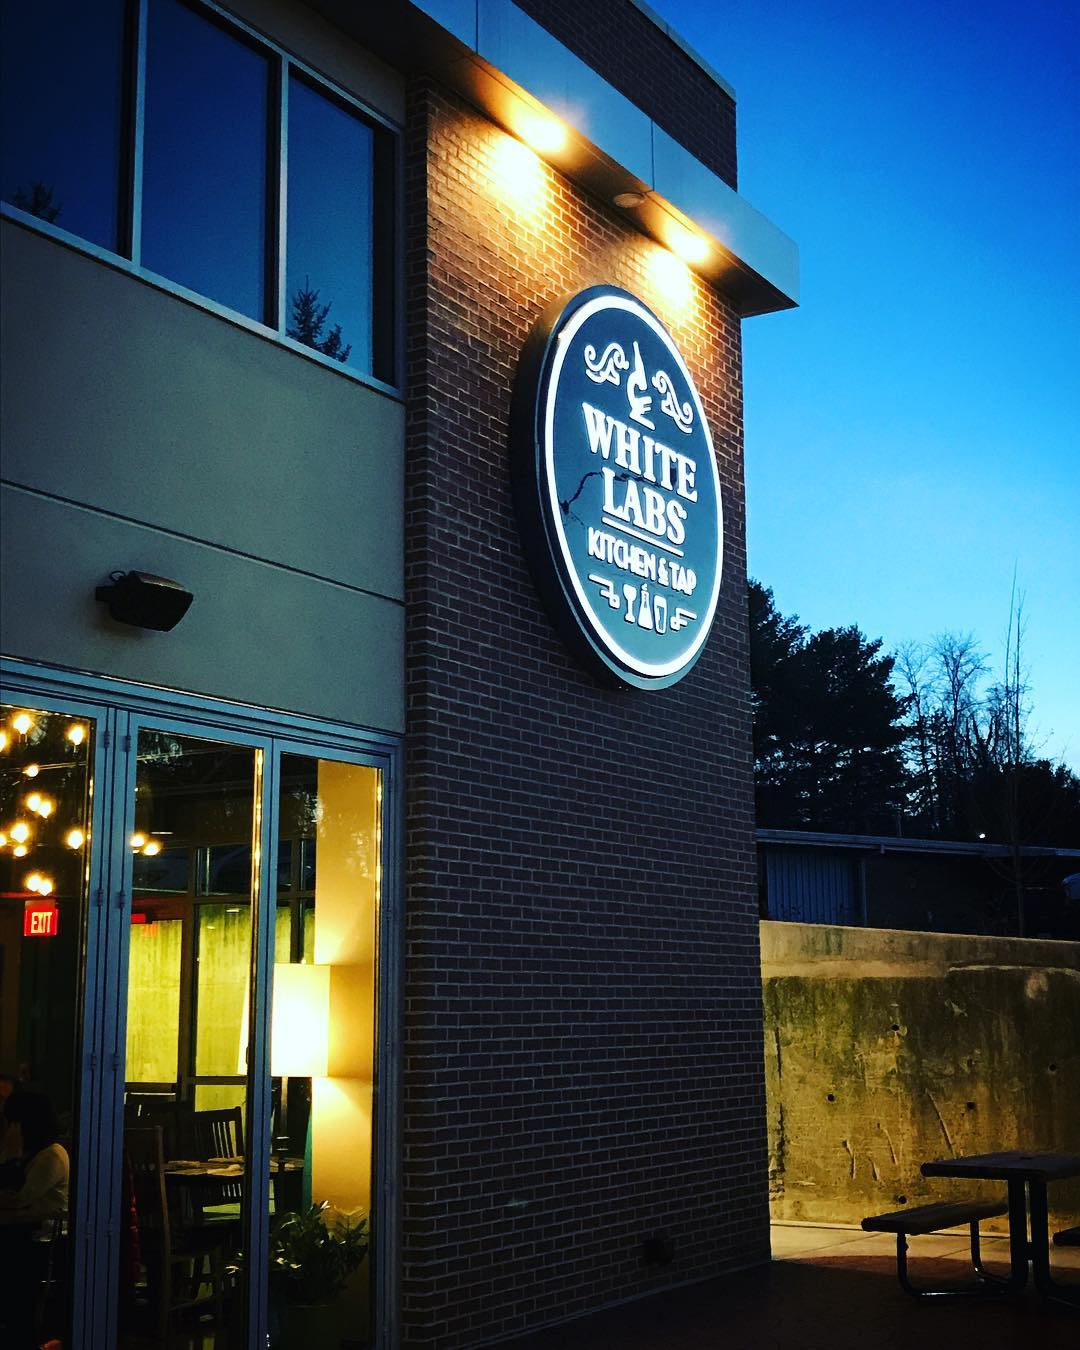 Asheville Restaurants - White Labs Kitchen & Tap - Original Photo